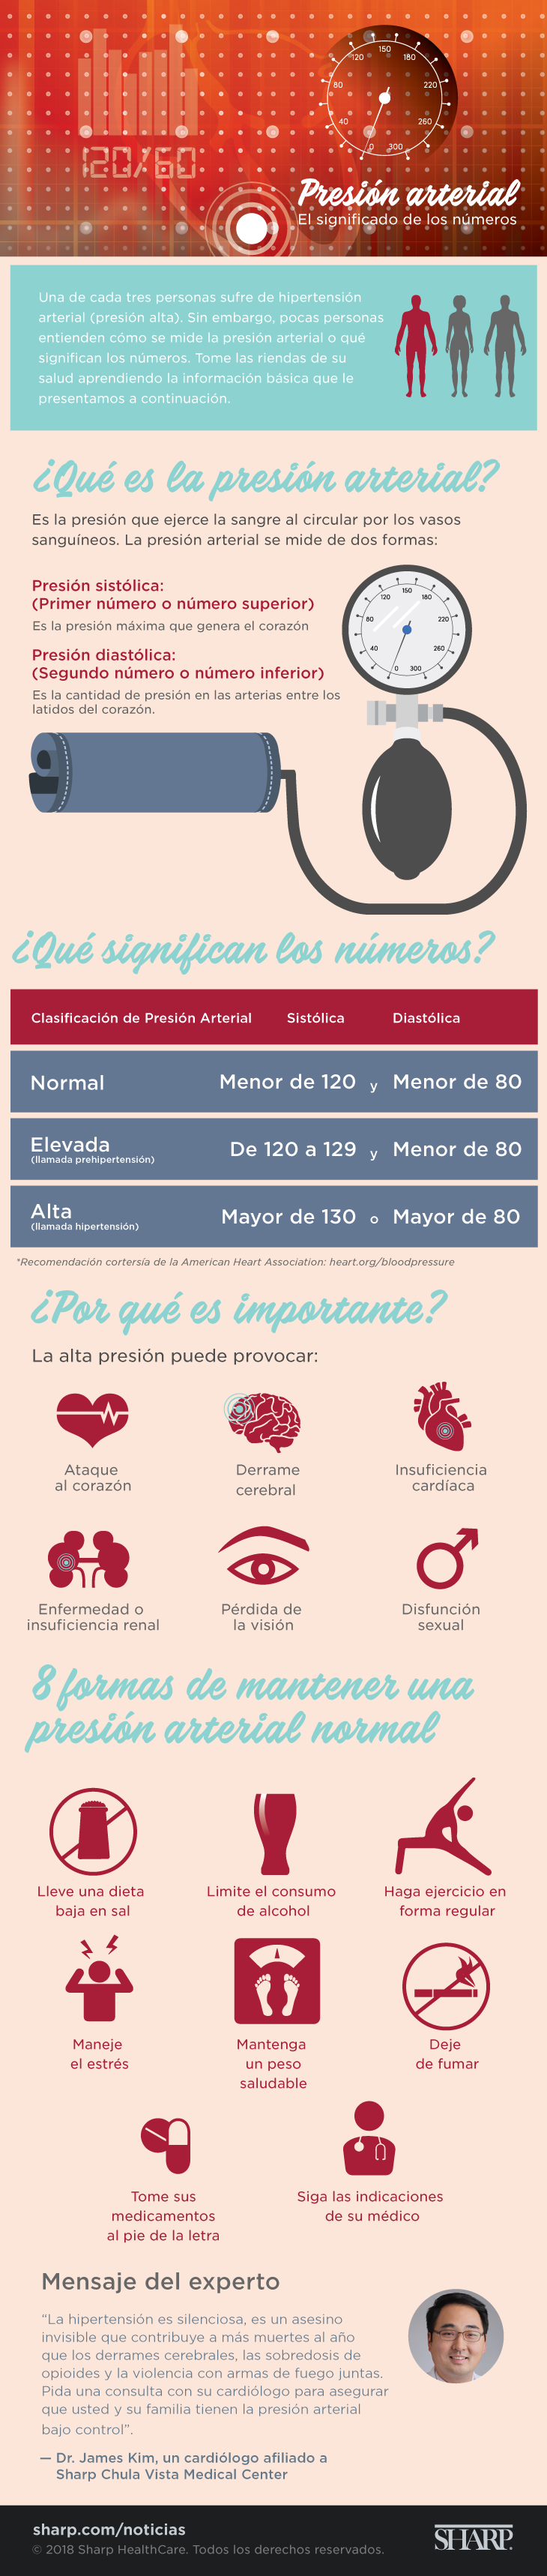 Spanish blood pressure infographic PNG body image